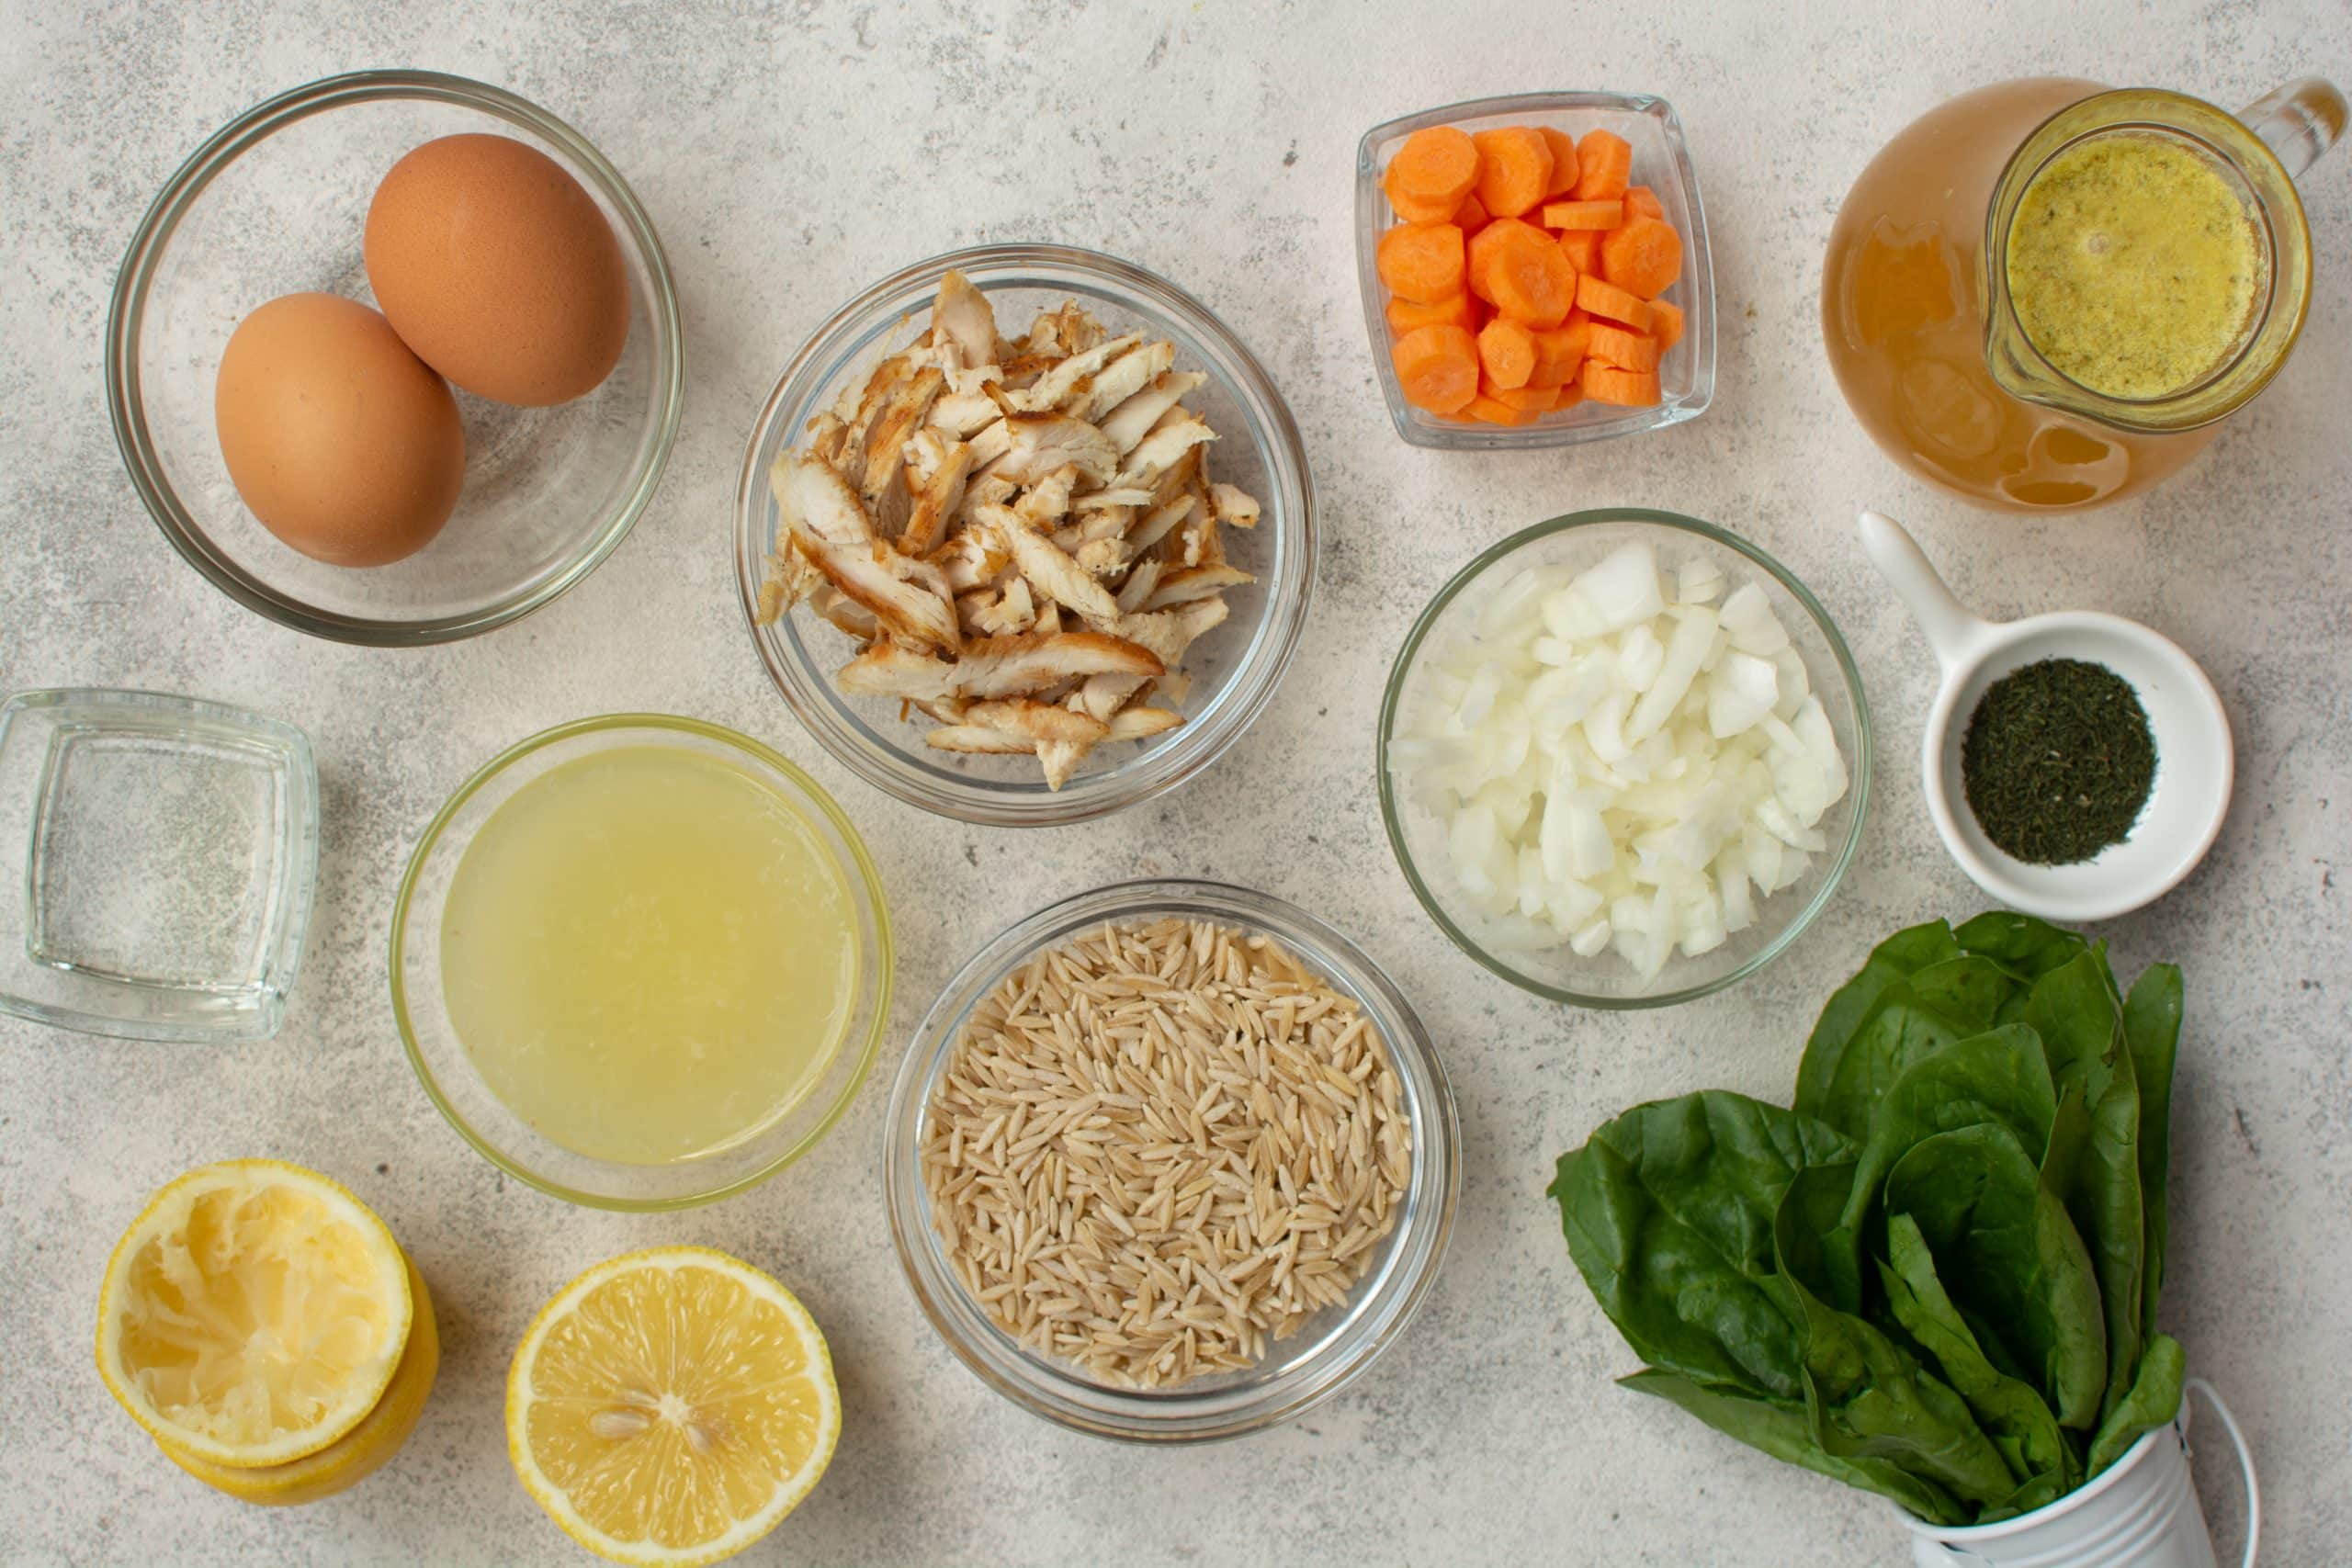 Copy of Orzo ingredients